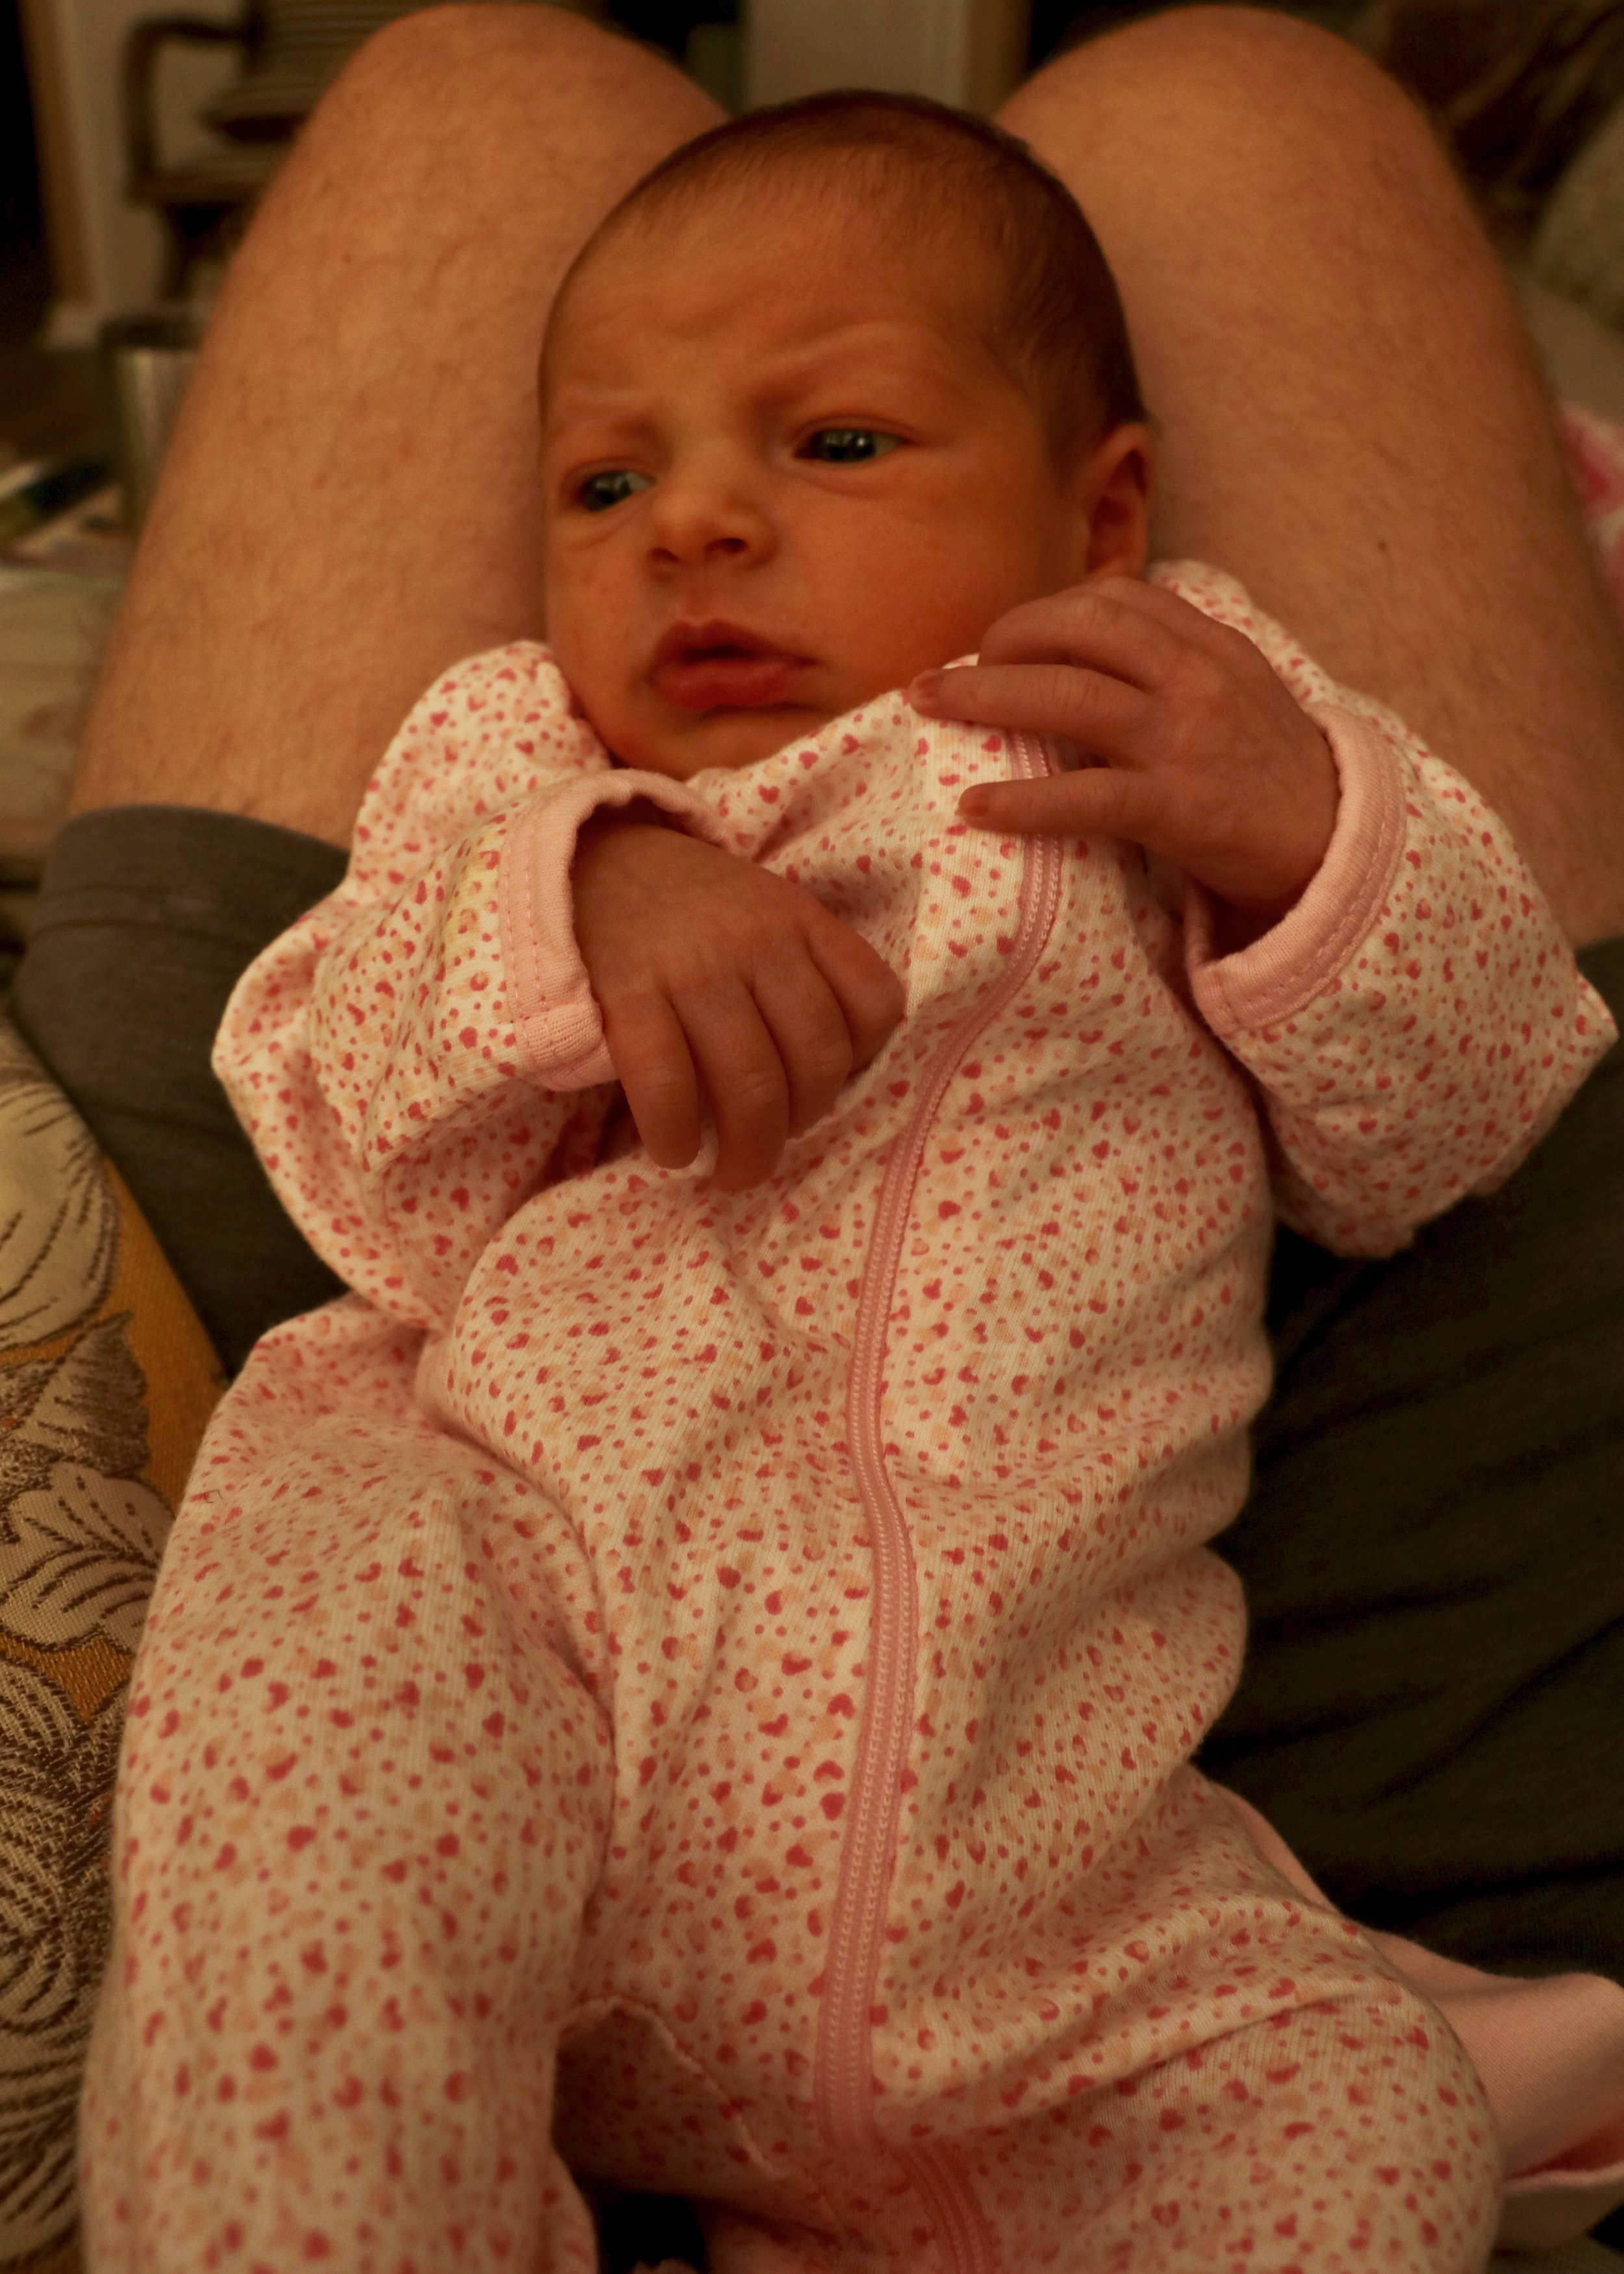 Jane at 6 Days. (Clarification: These are Jake's legs.)